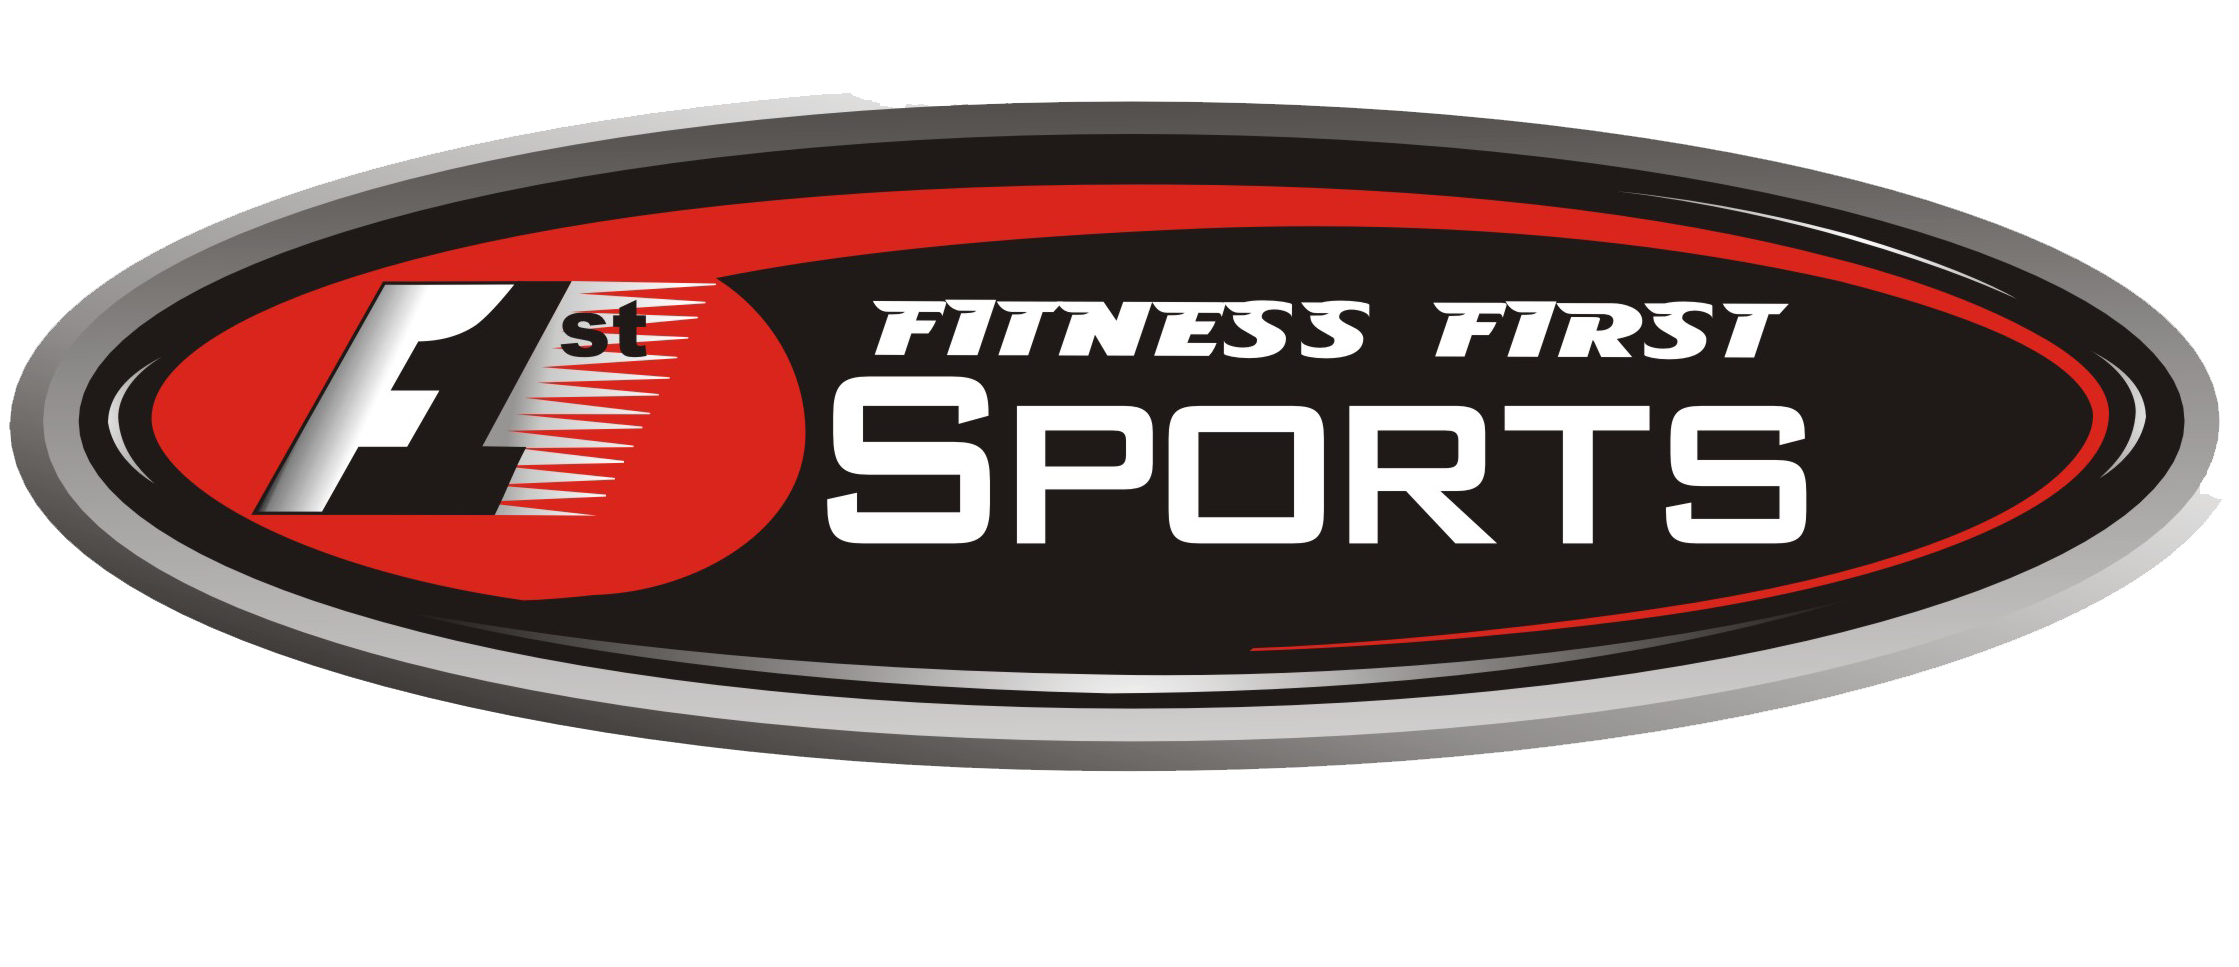 fitness first sports